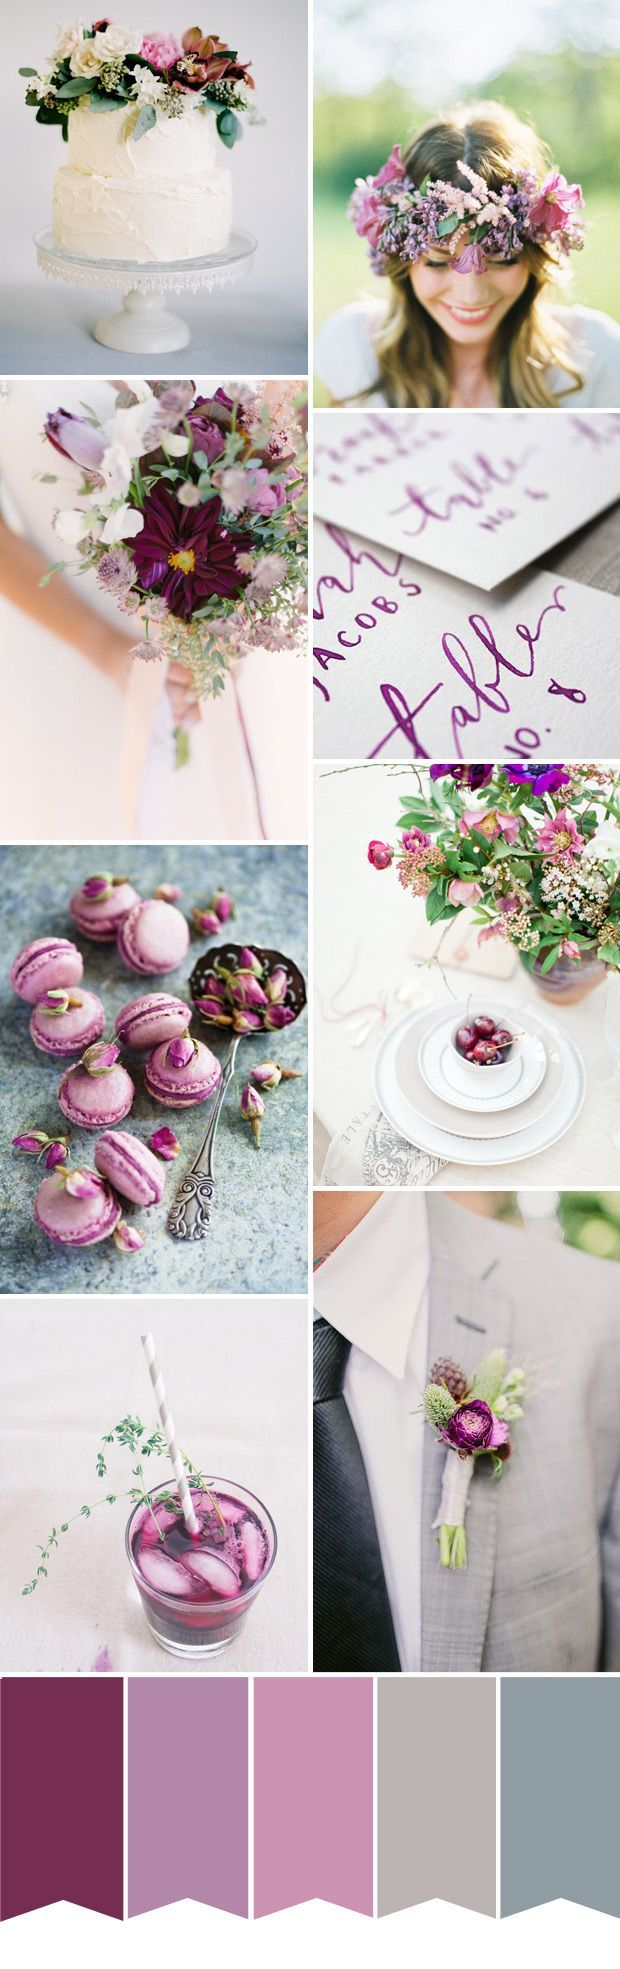 Pantone Colour of the Year Radiant Orchid Wedding Inspiration